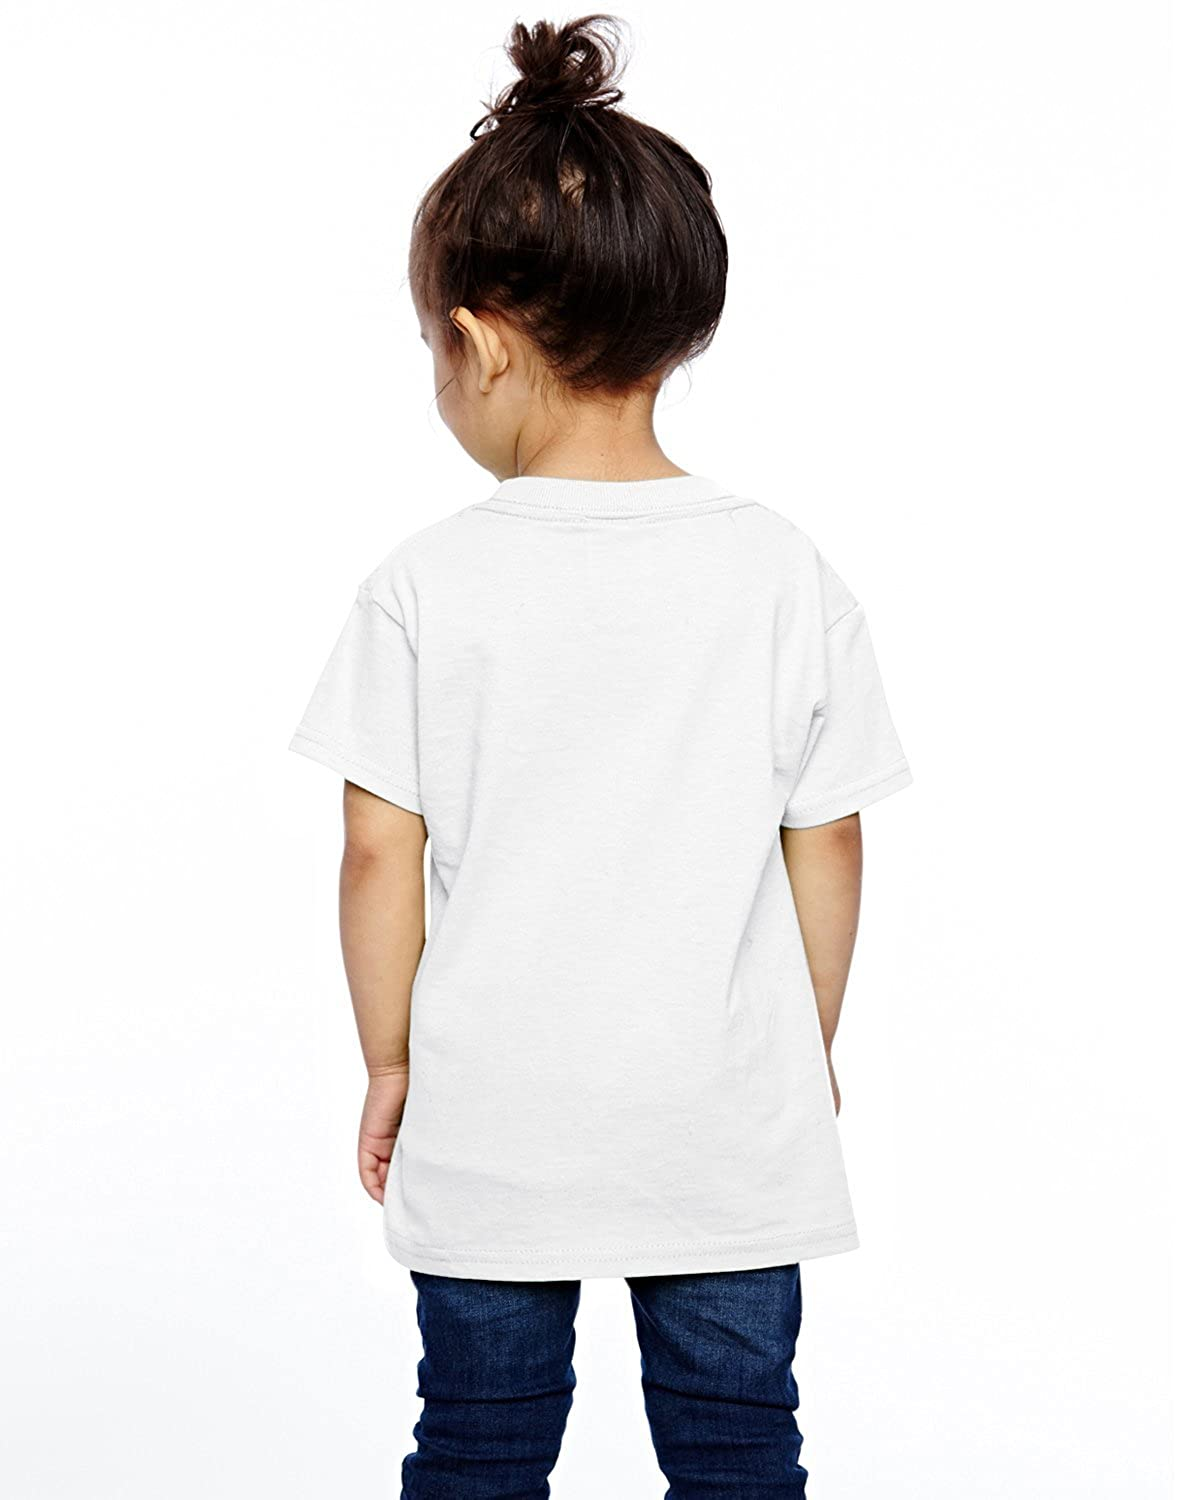 Merry Christmas Parkour Mooving 2-6 Years Old Child Short Sleeve T-Shirt